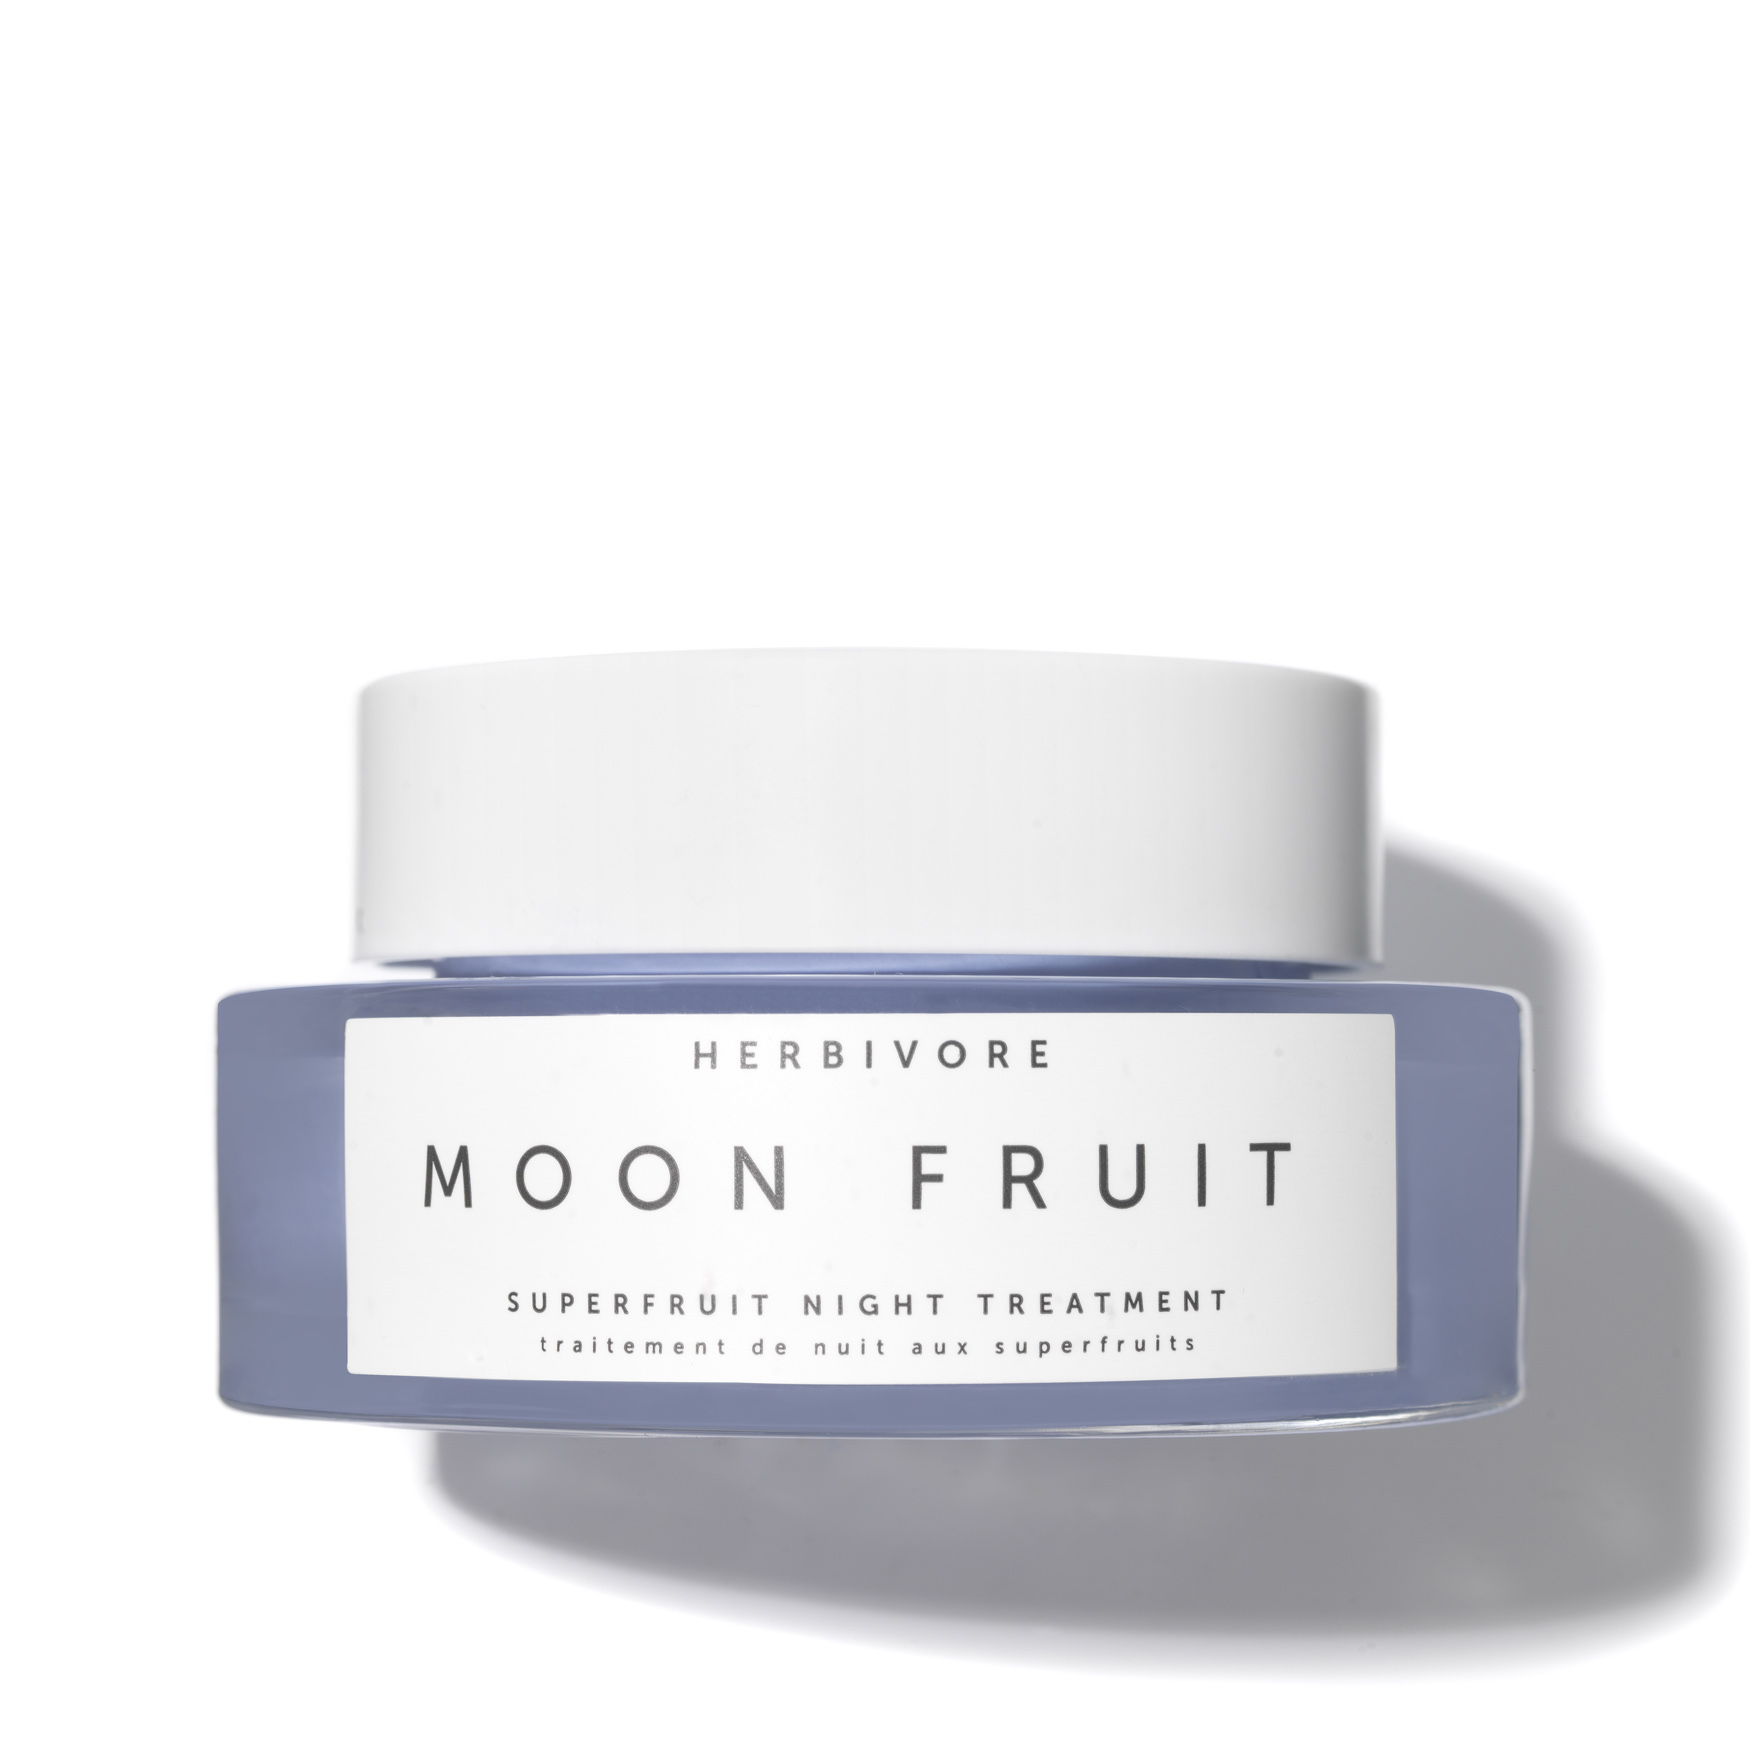 HERBIVORE Moon Fruit Superfruit Night Treatment 50ml